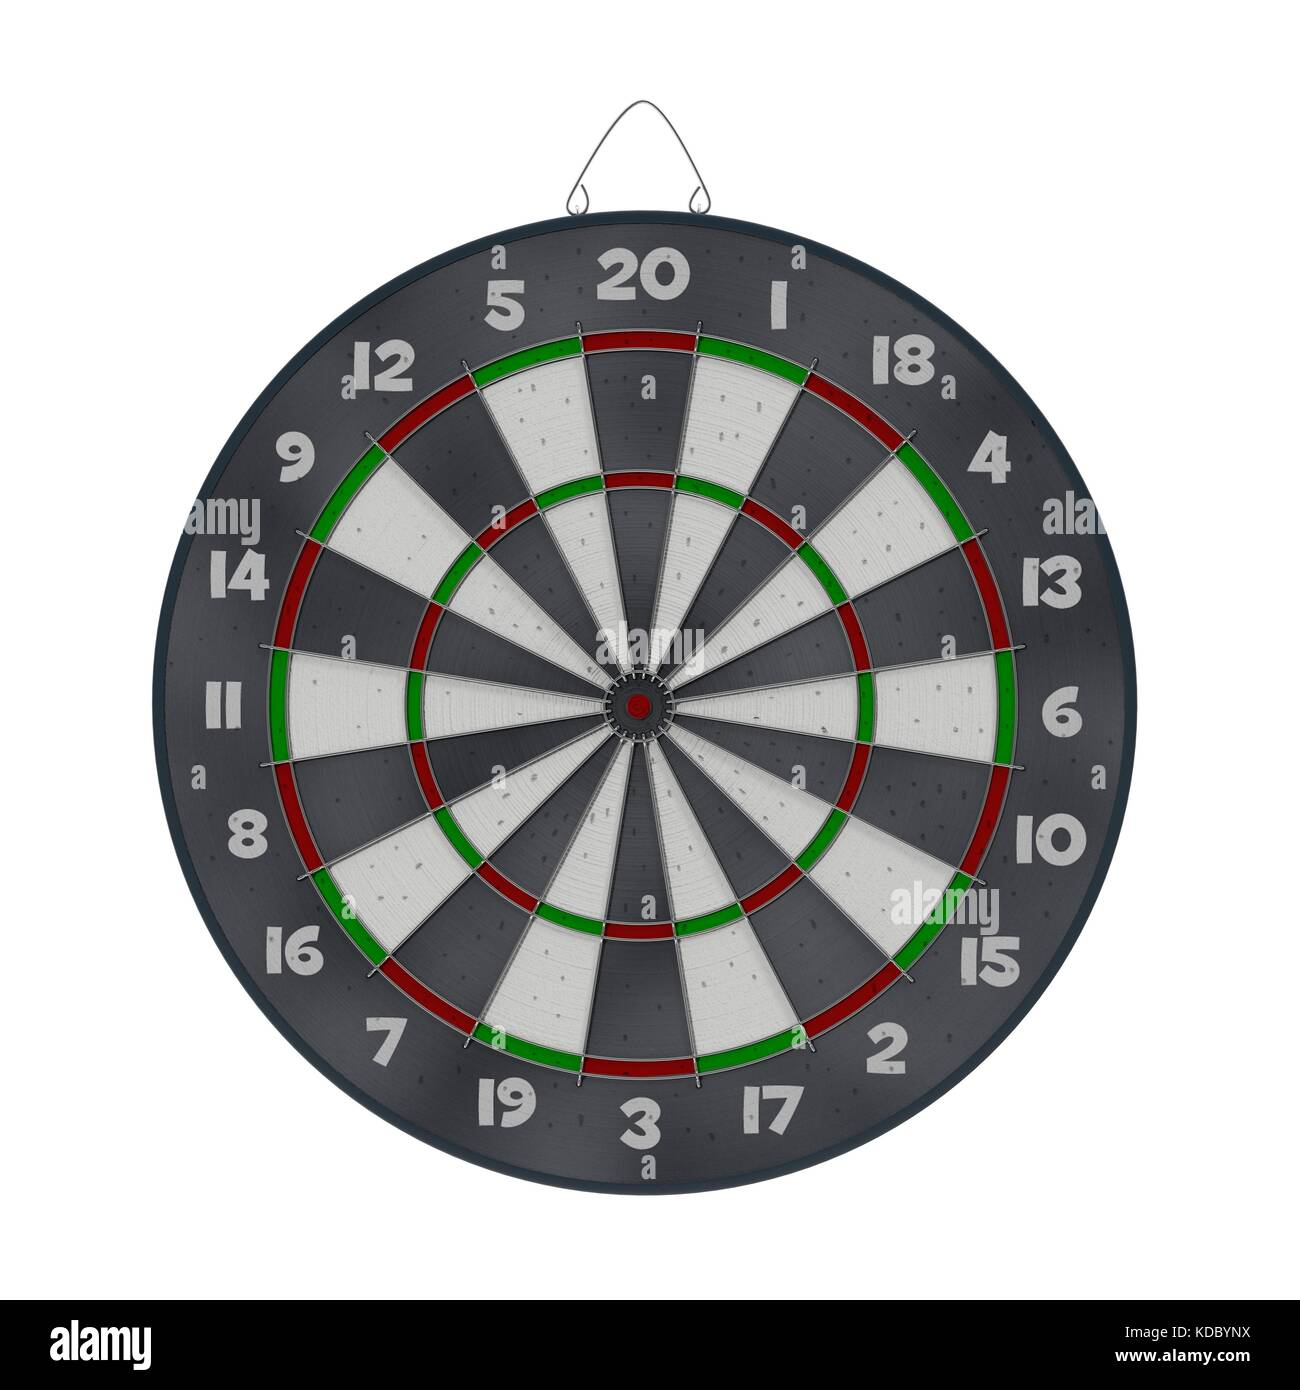 Old target dartboard isolate on white. - Stock Image